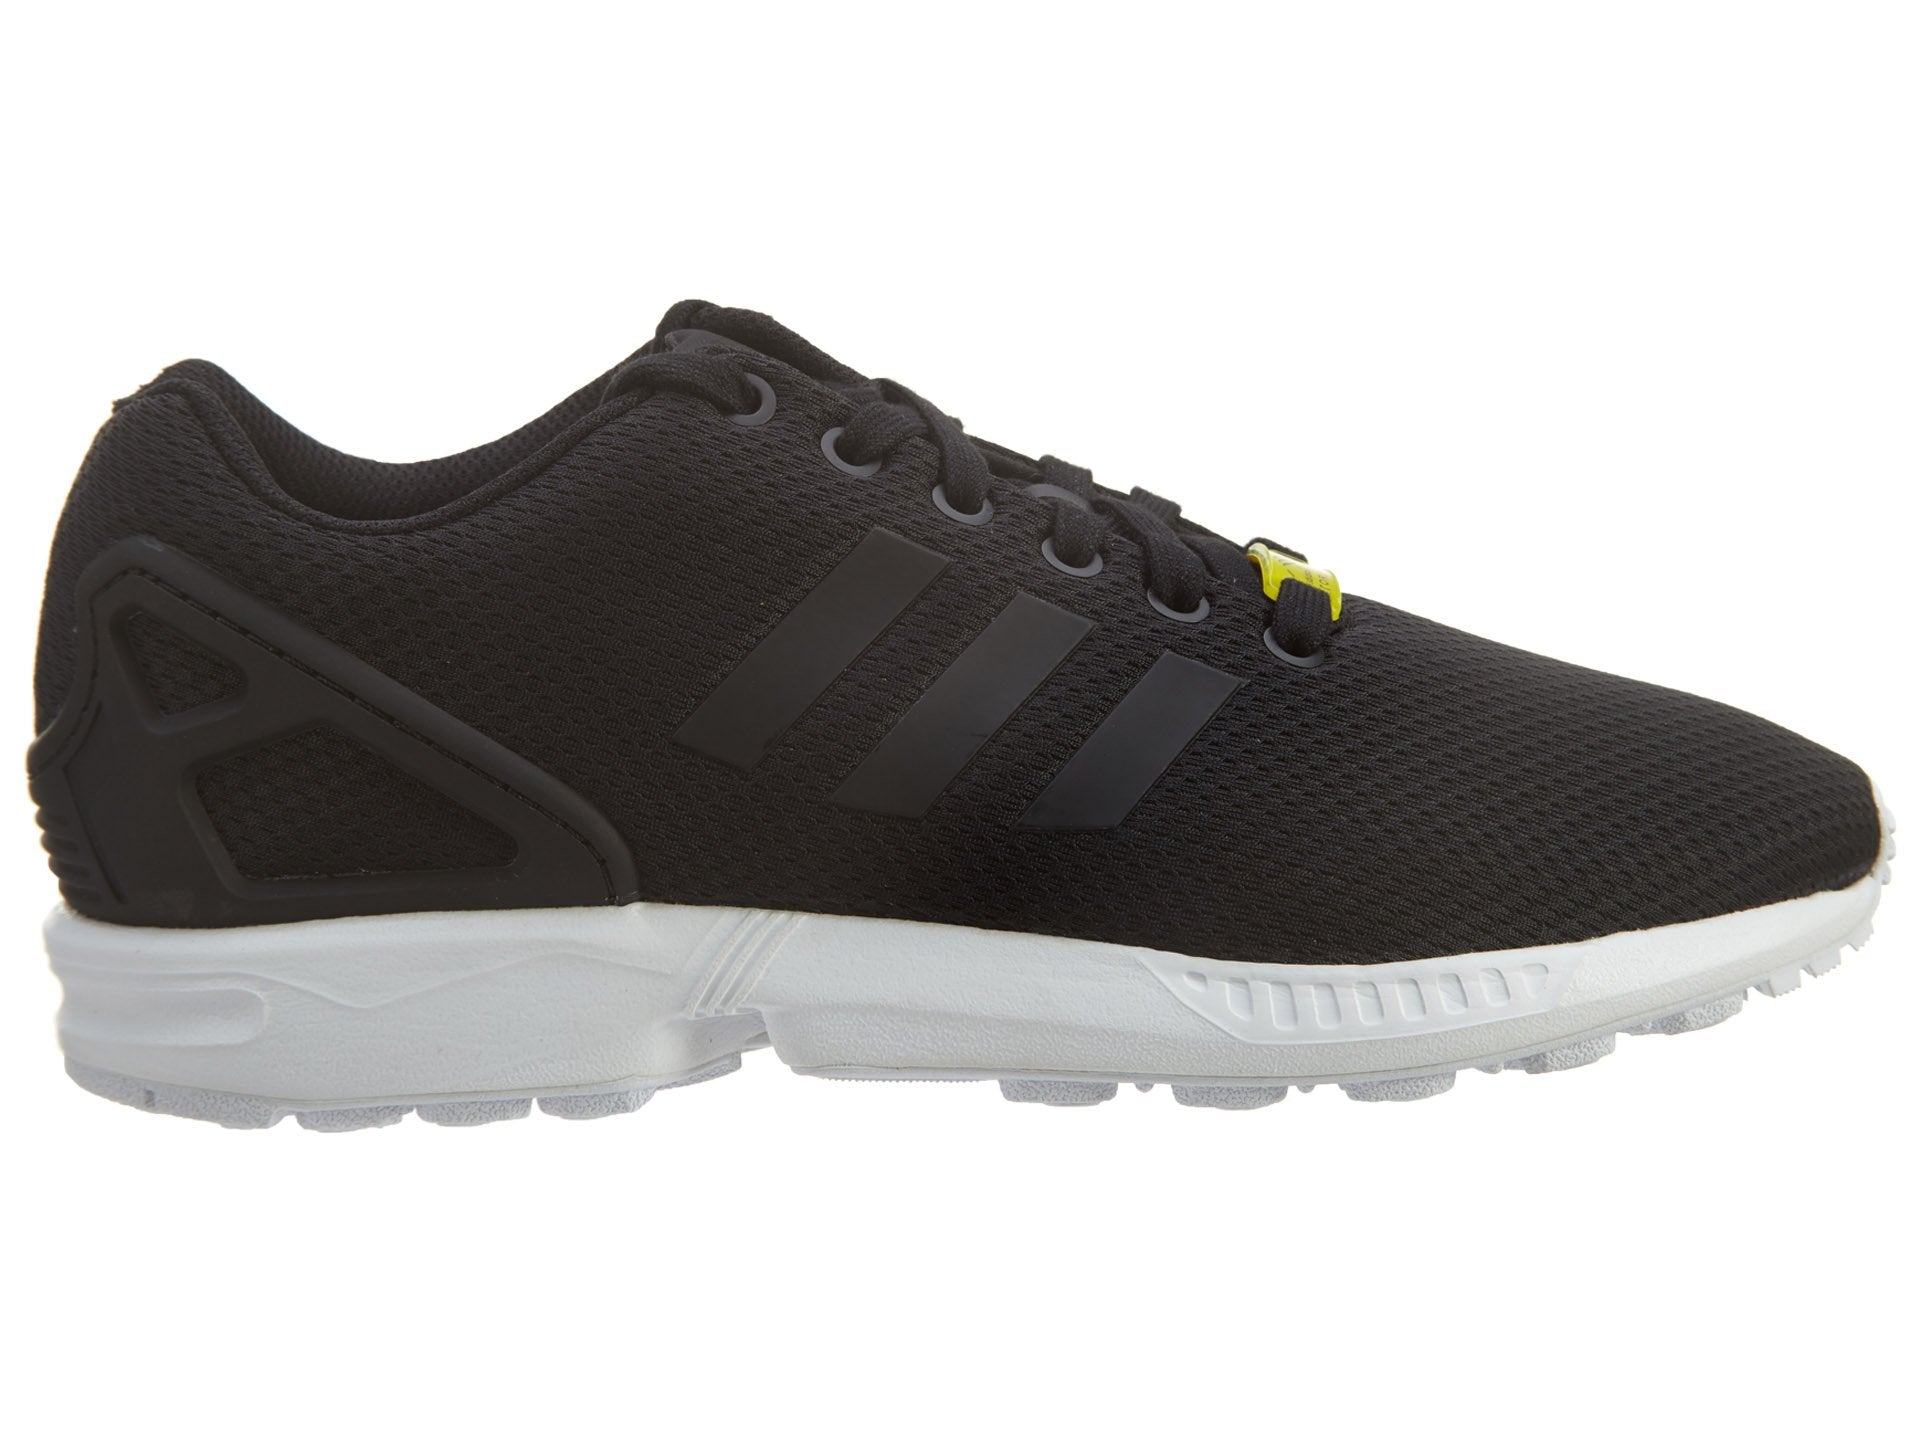 best website 5e63d b1438 ... Load image into Gallery viewer, Adidas Zx Flux Mens Style   M19840 ...